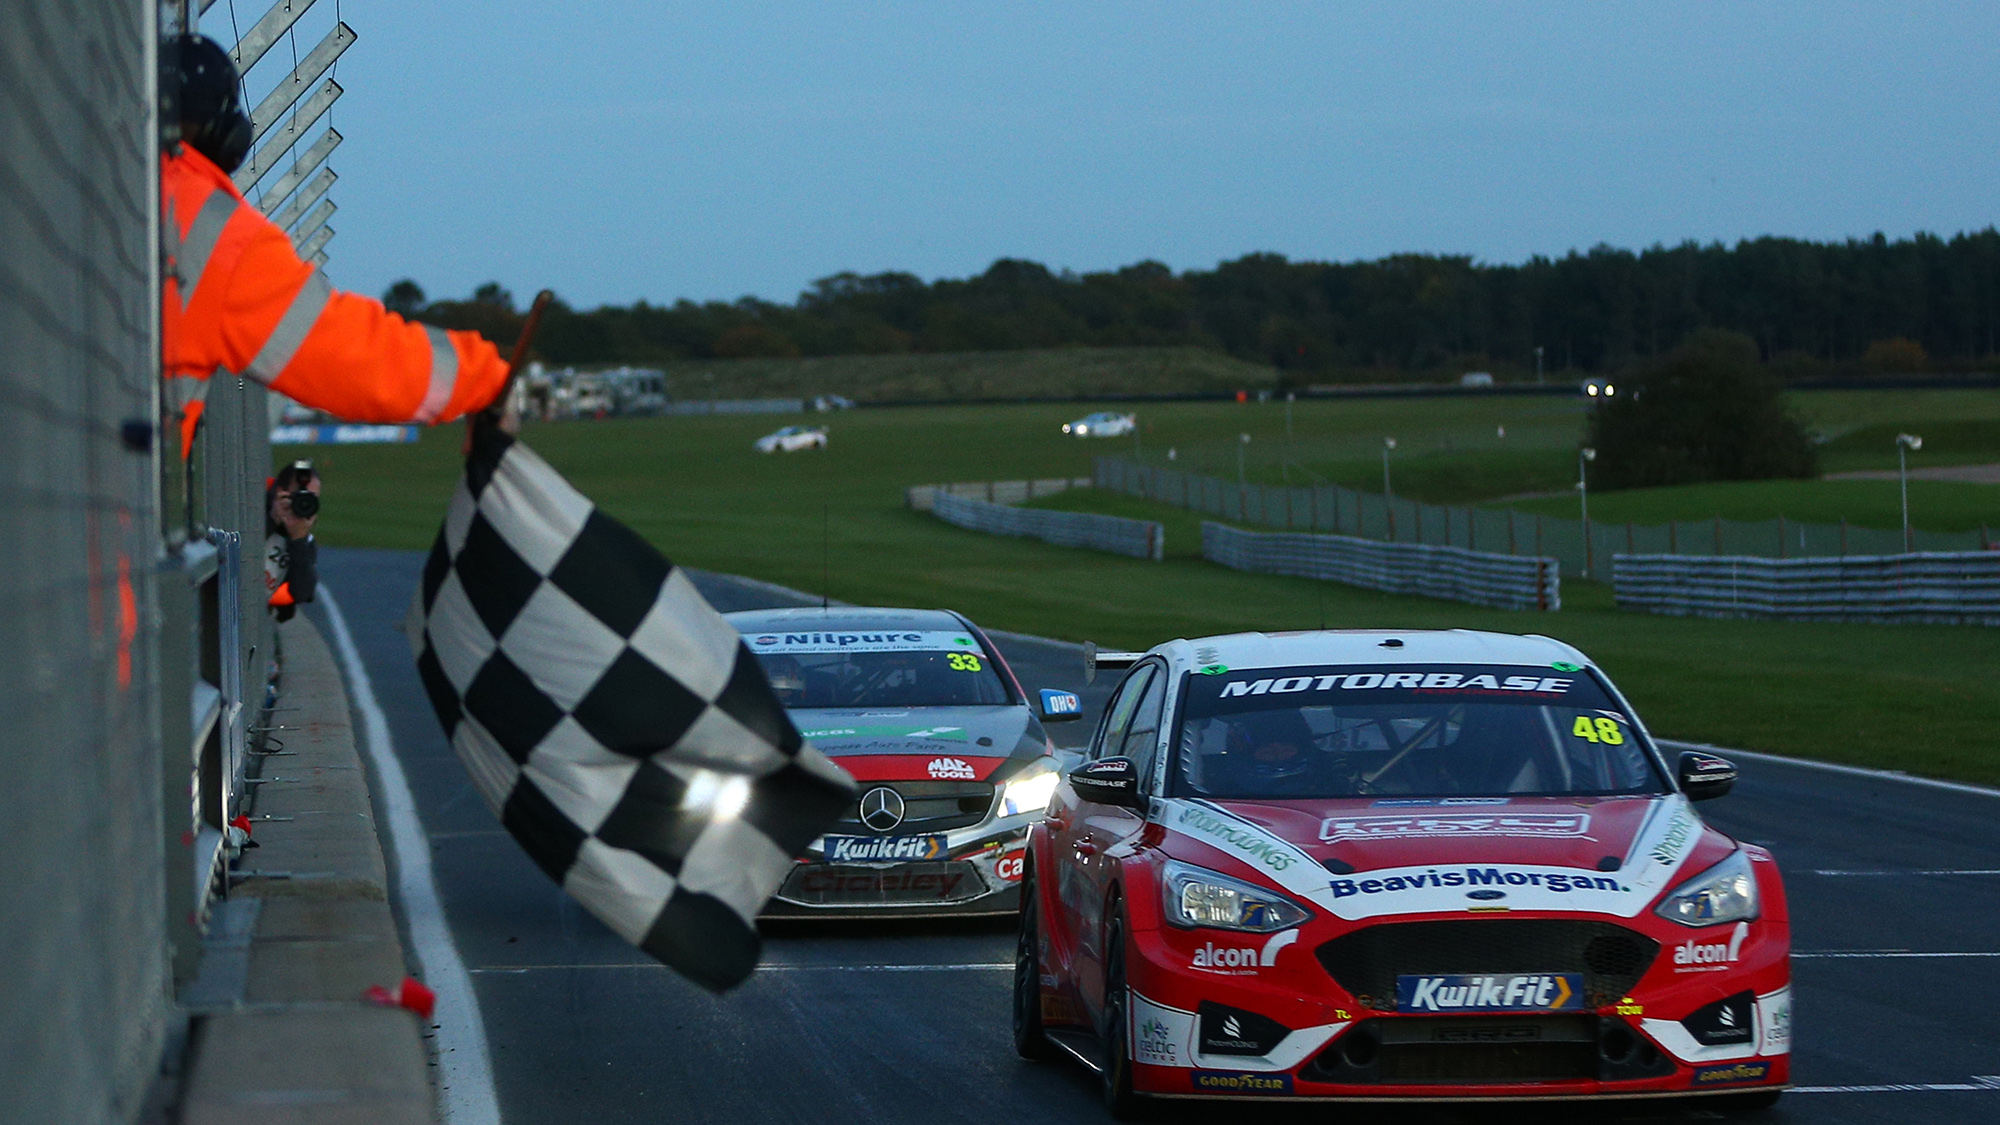 Jackson leads Morgan to the chequered flag in the final Snetterton race og the 2020 BTCC round